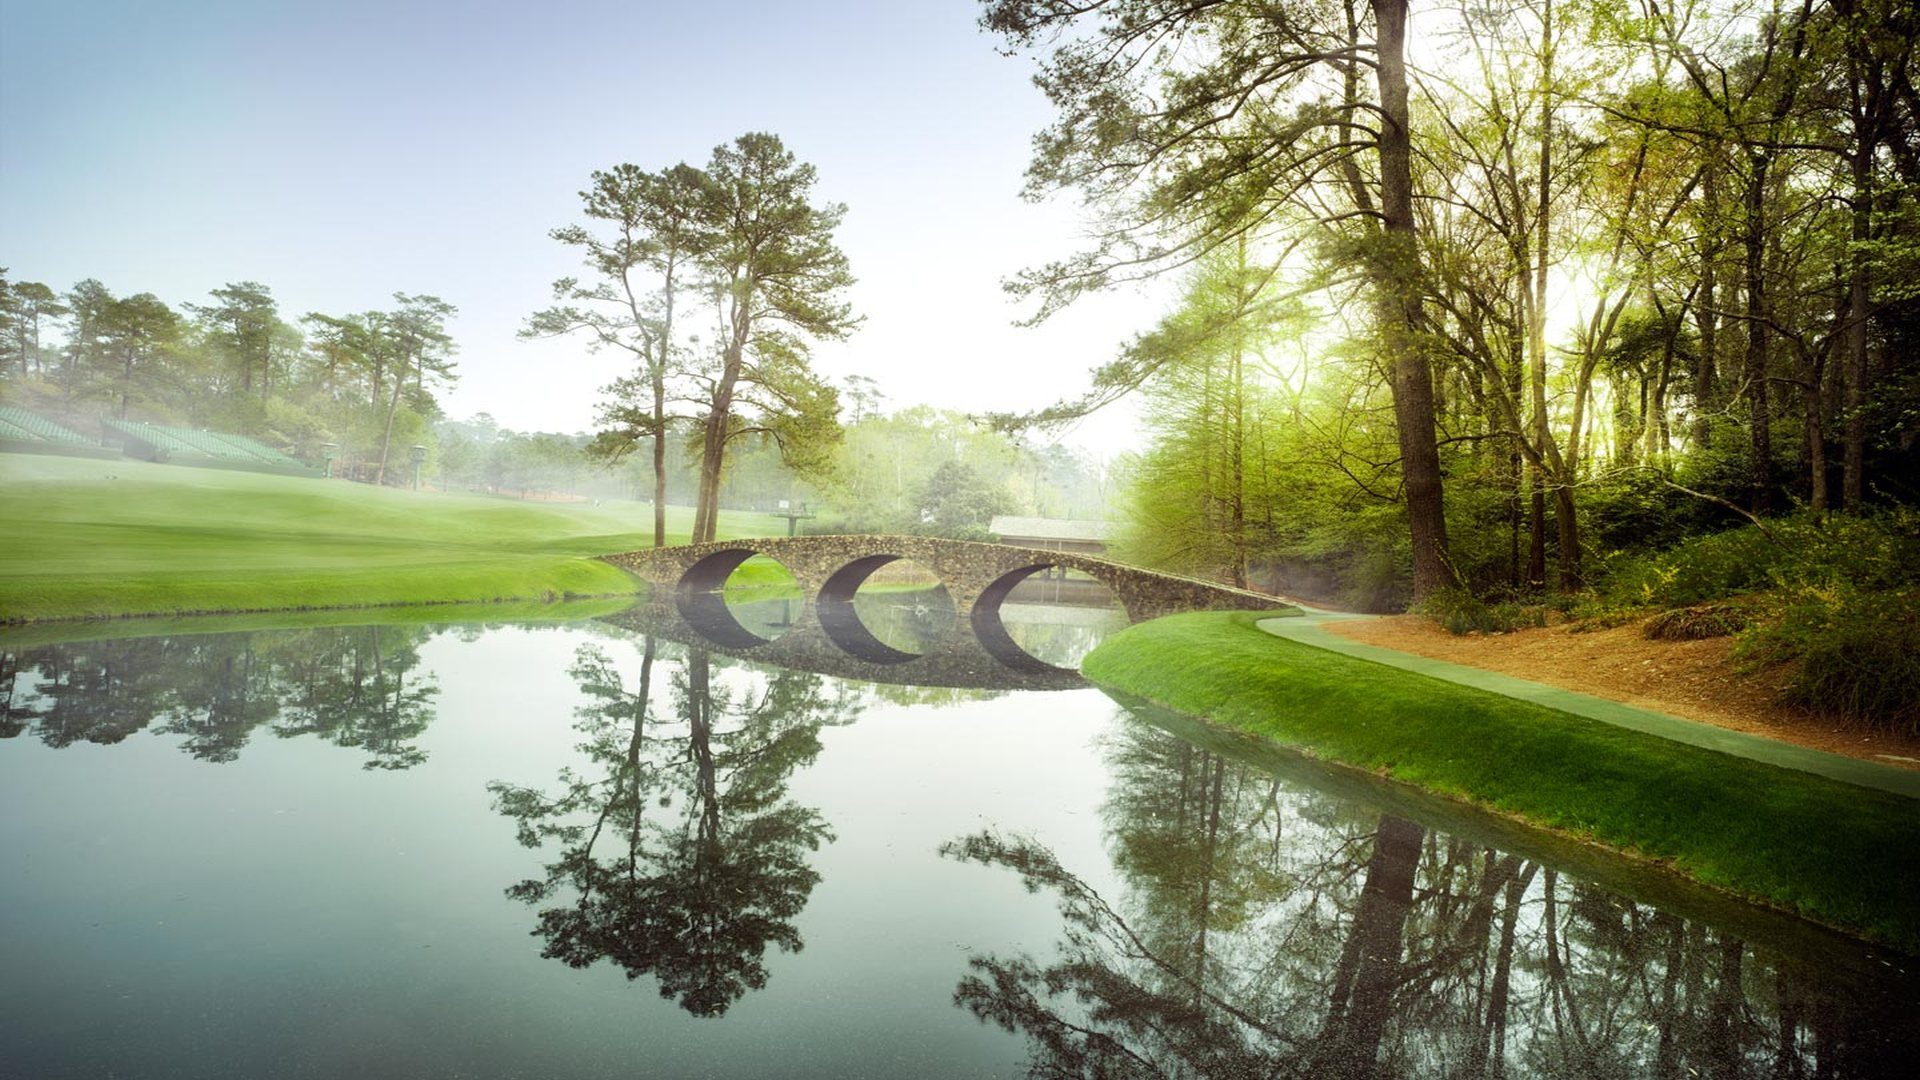 47] Augusta National Golf Course Wallpaper on WallpaperSafari 1920x1080